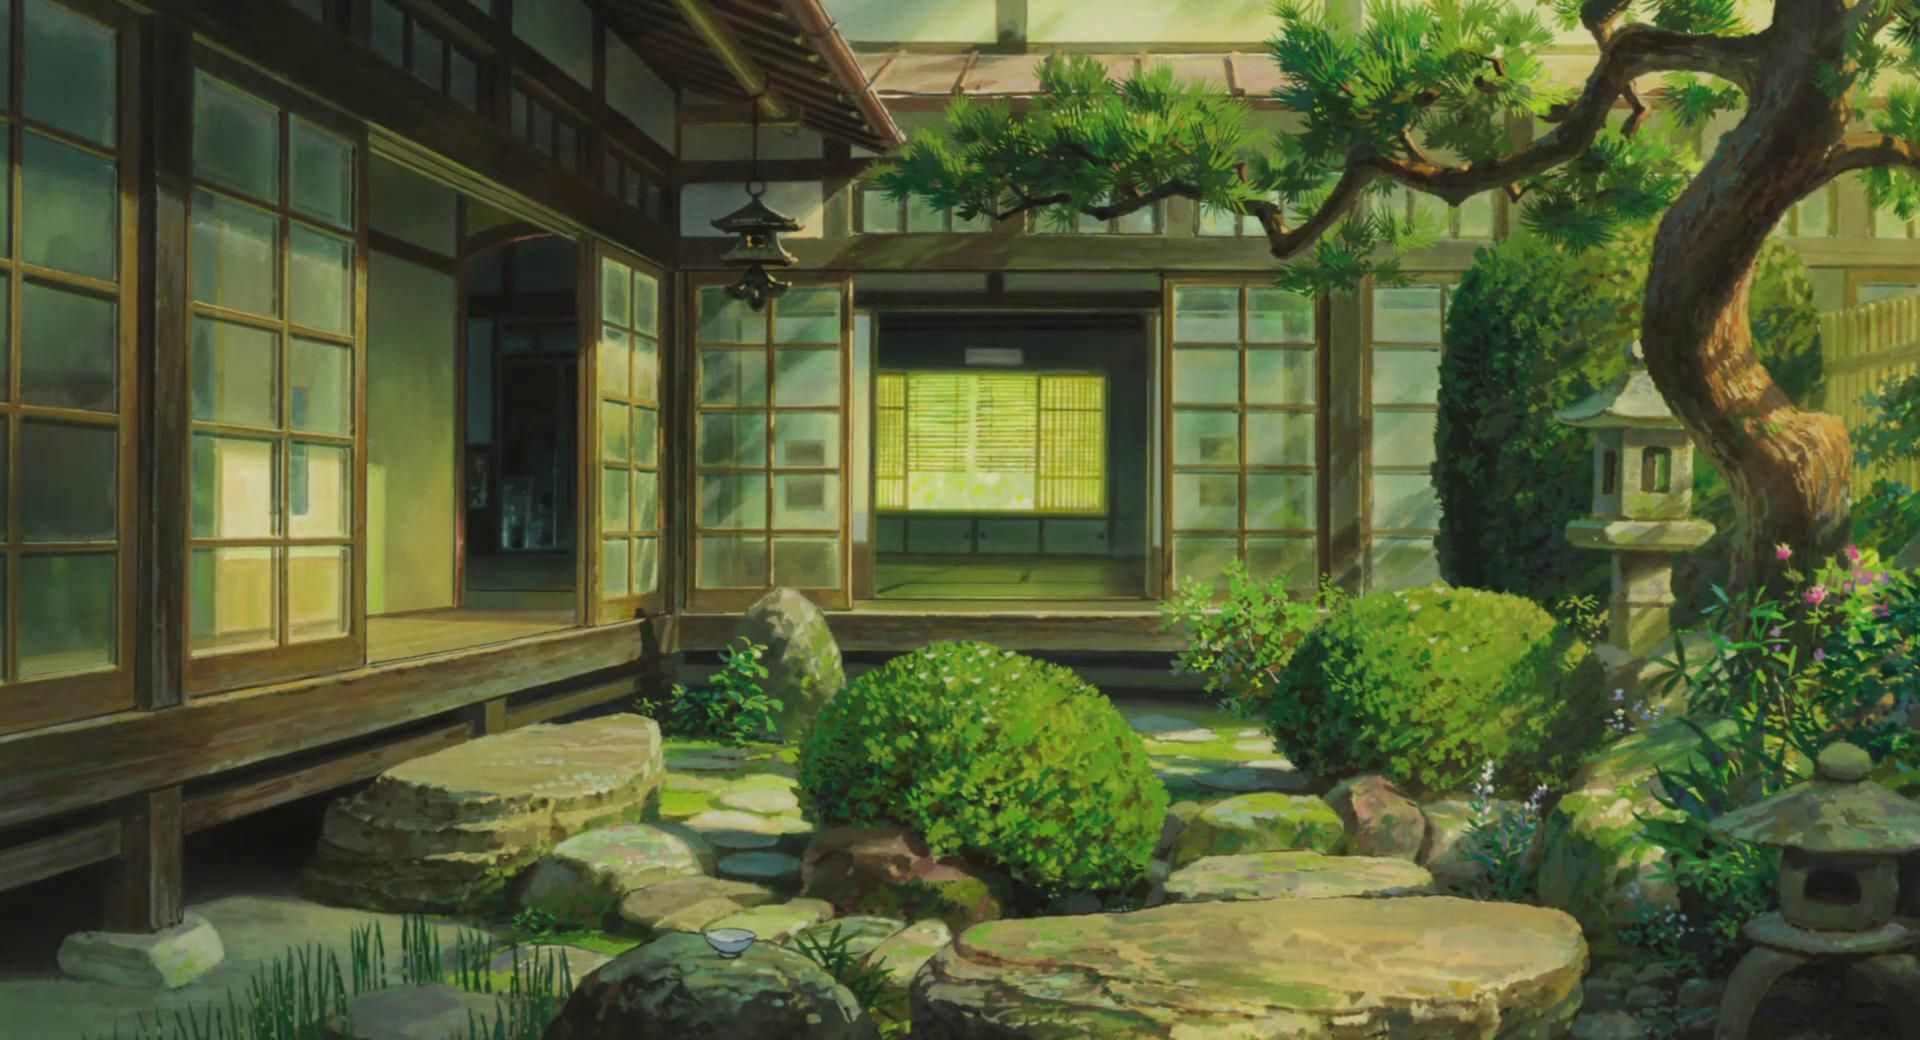 A While Back I Posted High Resolution Hand Painted Scenes From Hayao Miyazaki S Films Here S 47 More From Th Studio Ghibli Background Anime Scenery Wind Rises